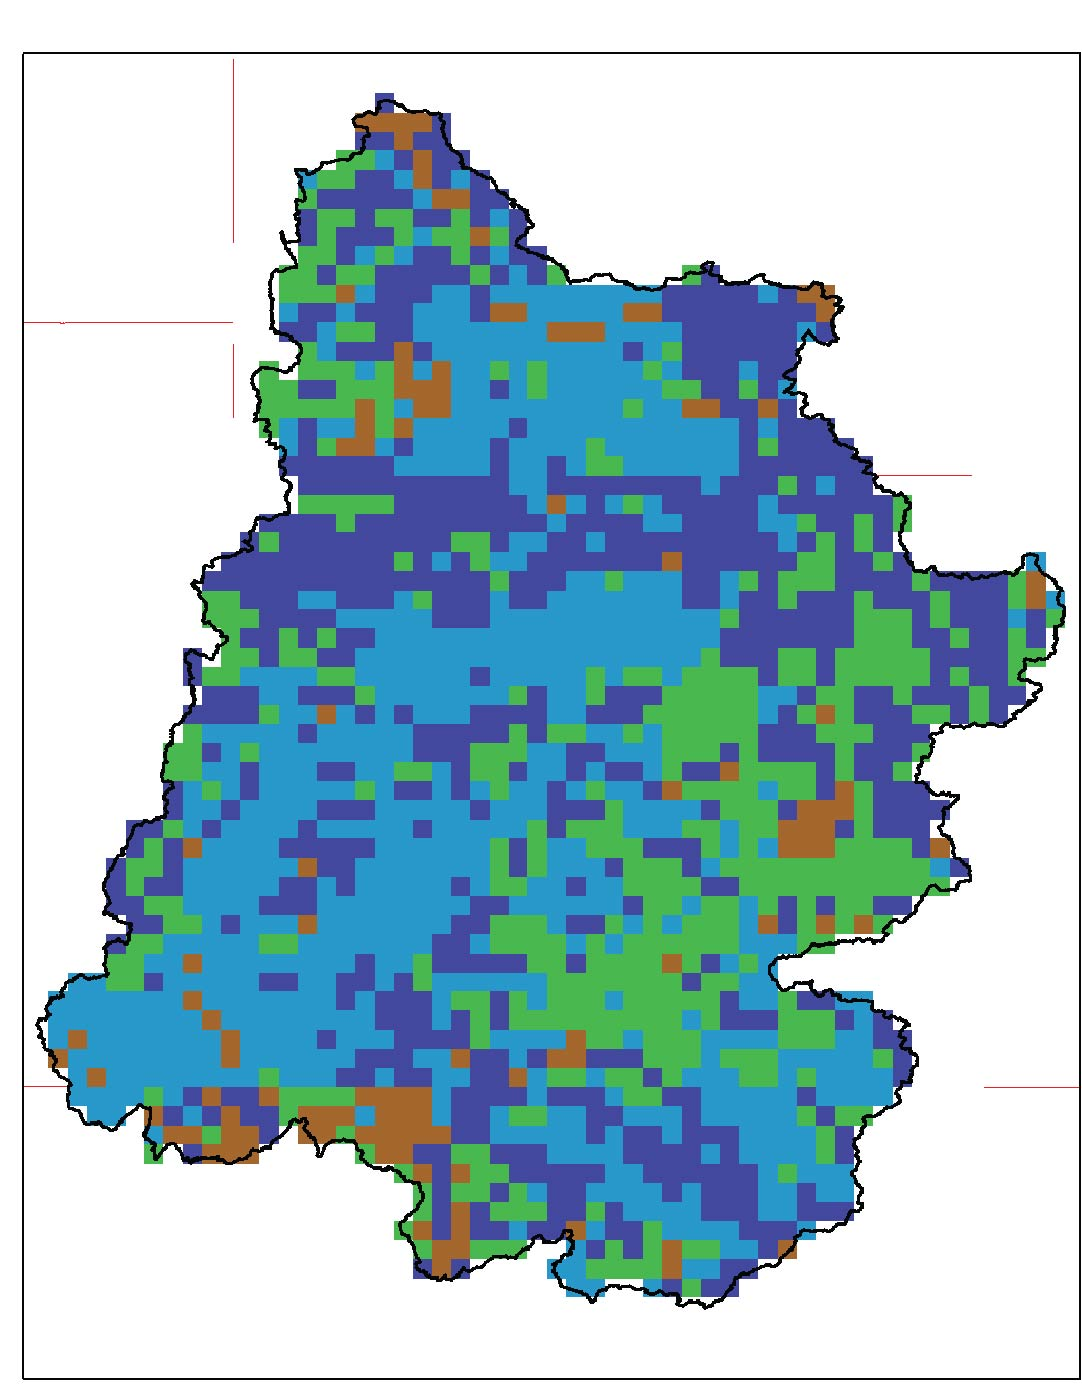 Map of available hydrologic soil group (hsg) resampled to Maurer climate resolution